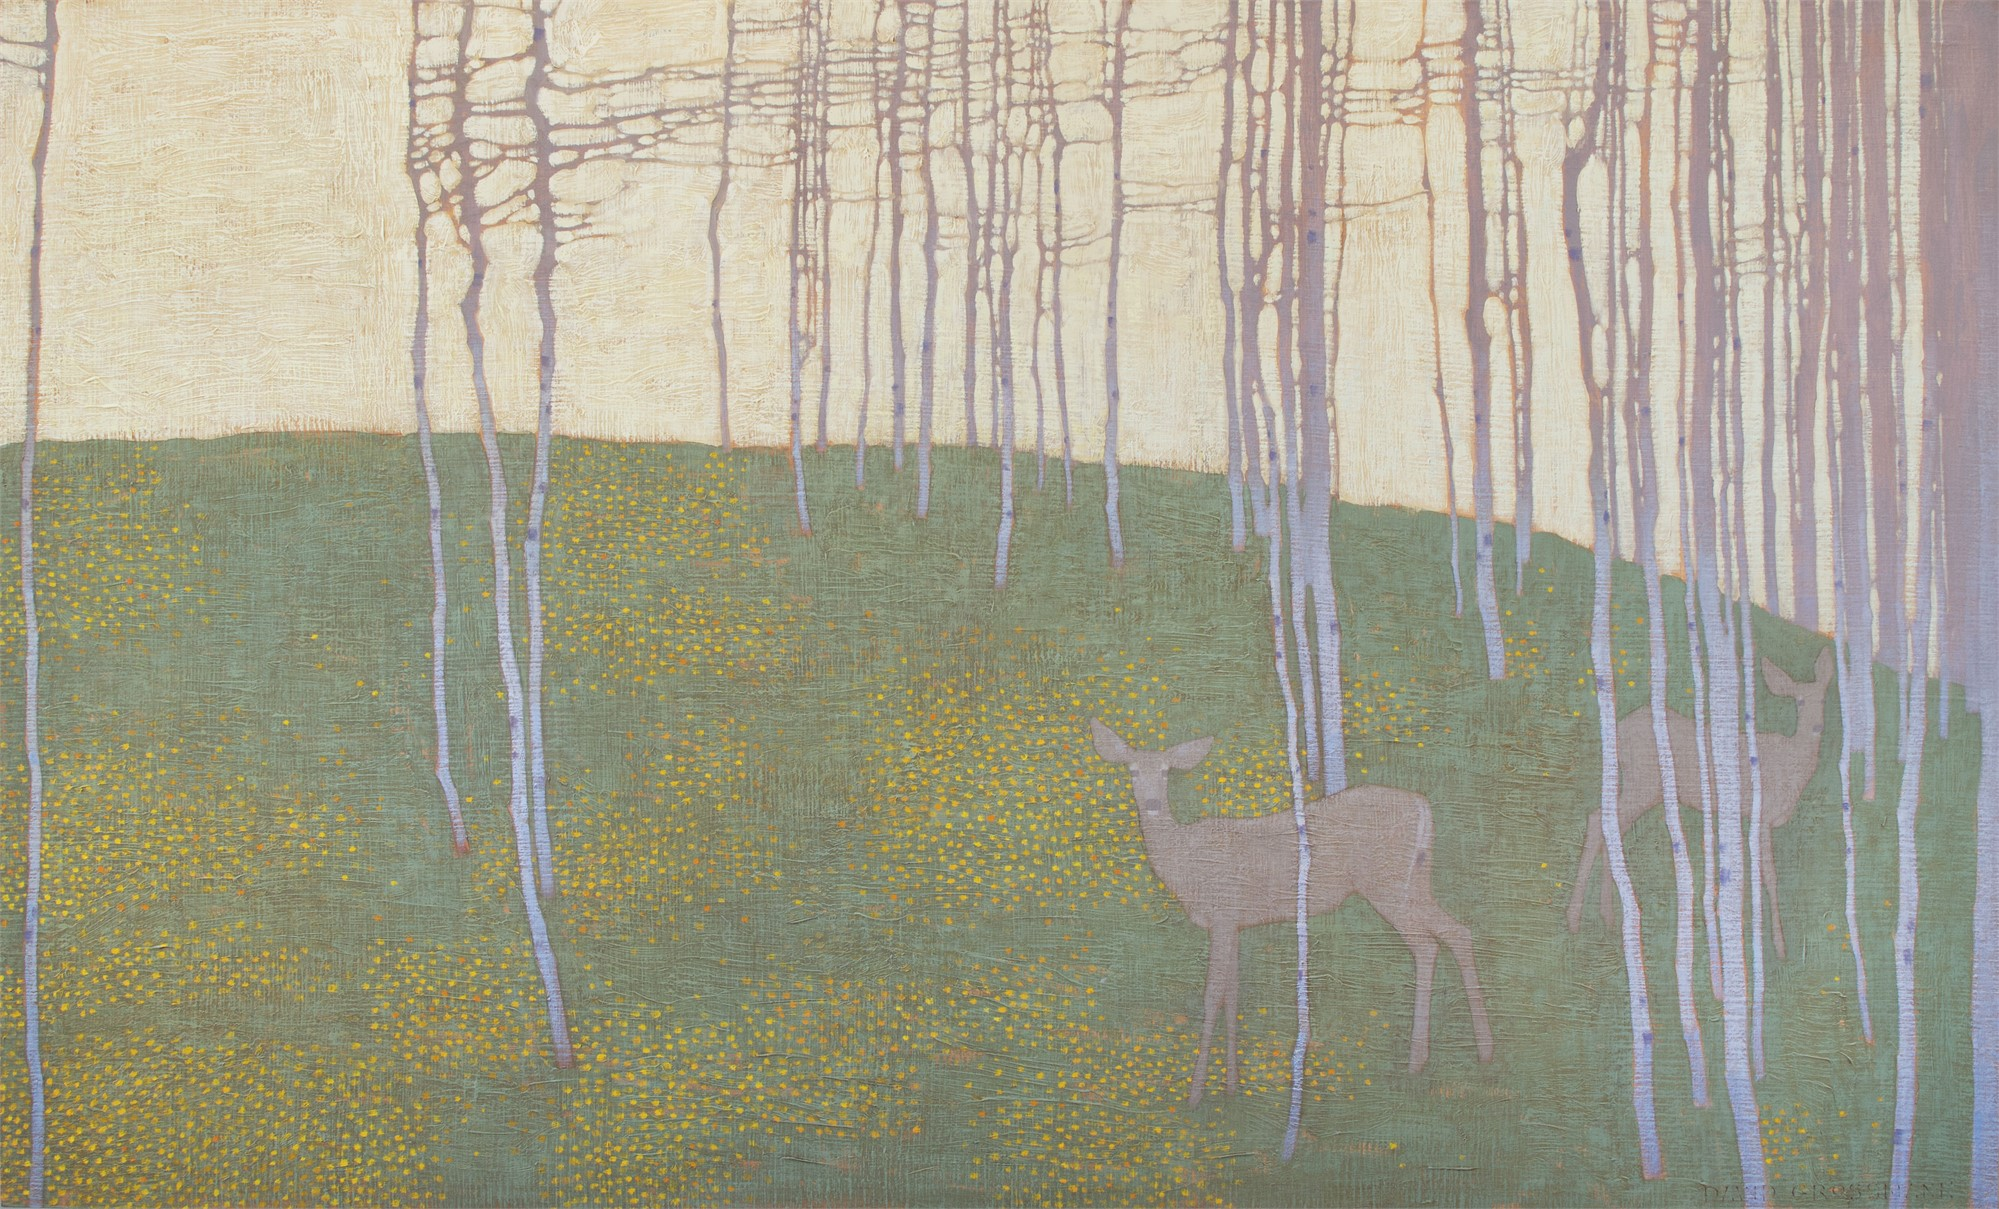 Summer Forest Patterns by David Grossmann